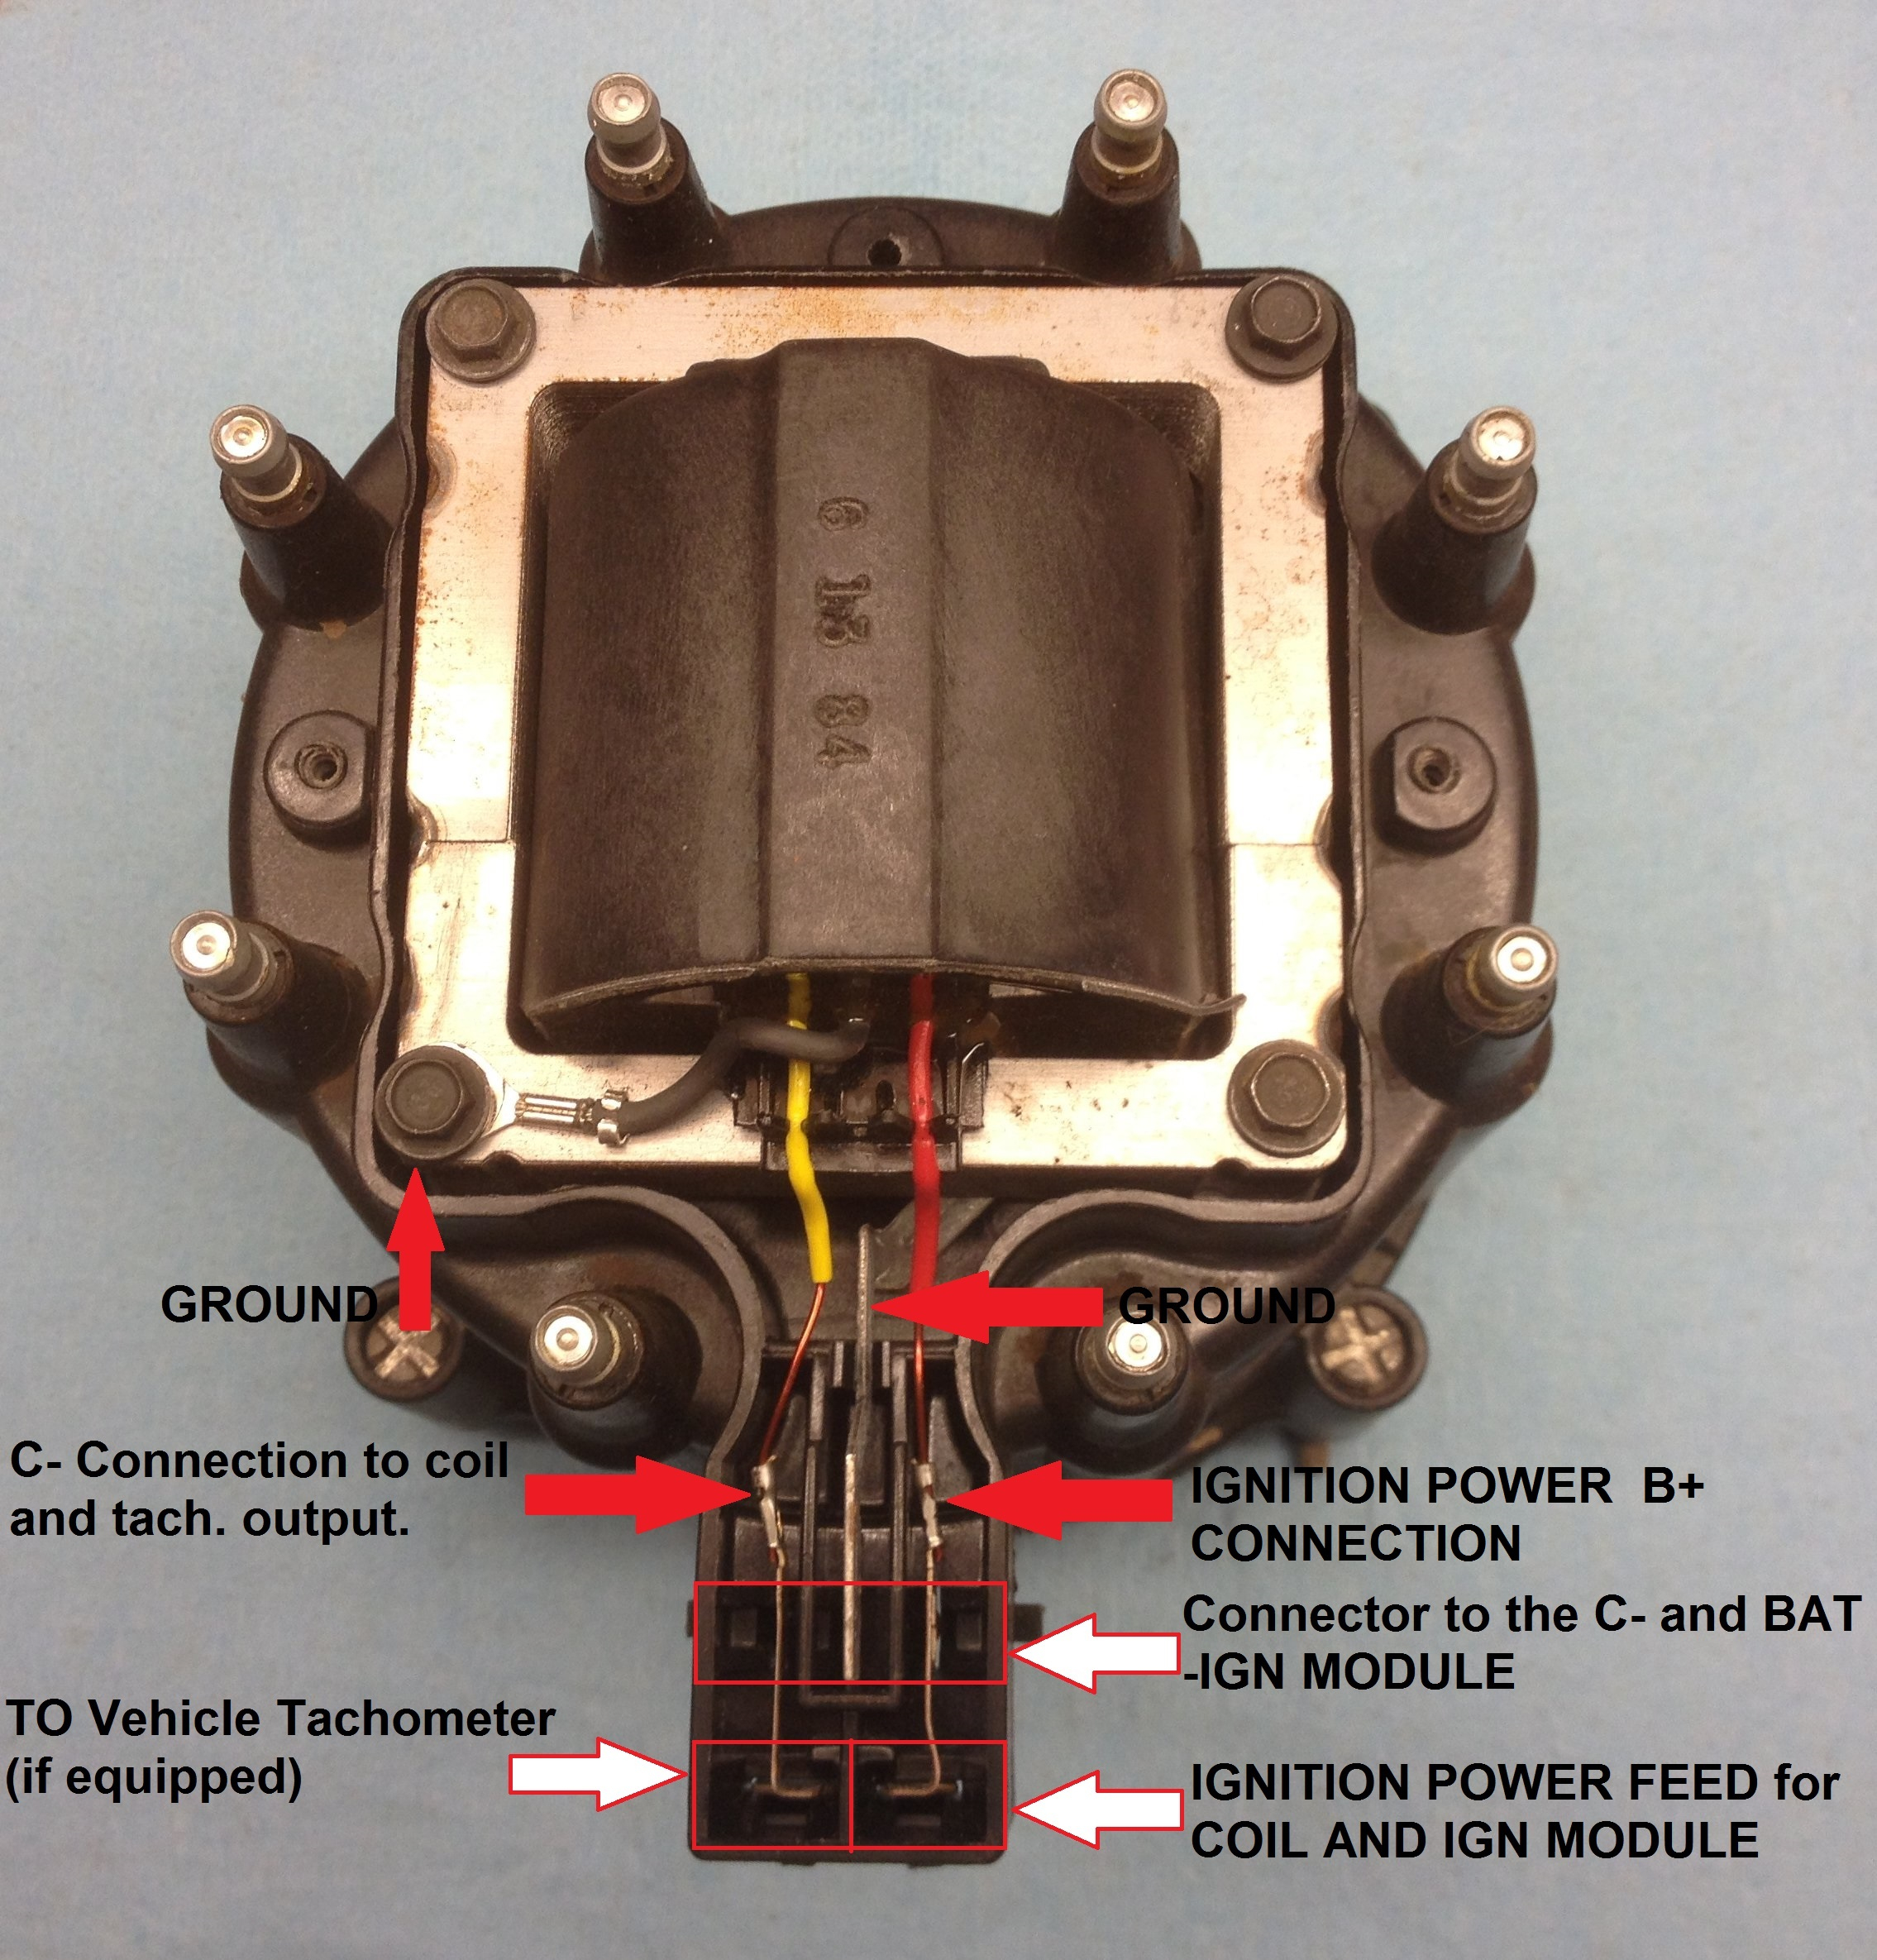 Gm Hei Distribitor Wiring Diagram | Wiring Diagram - Hei Distributor Wiring Diagram Chevy 350